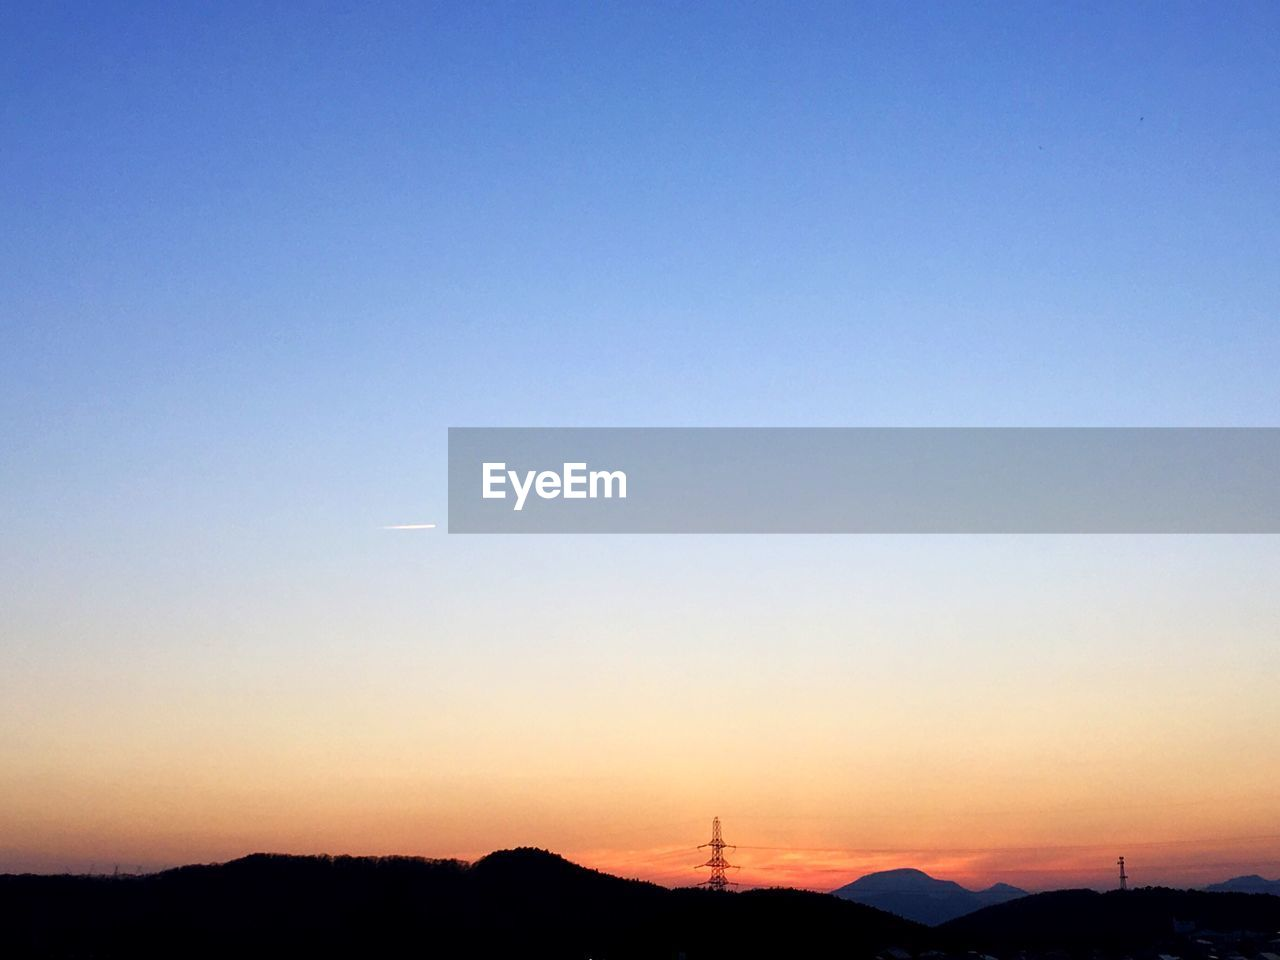 sunset, beauty in nature, nature, silhouette, scenics, tranquil scene, copy space, tranquility, mountain, no people, outdoors, blue, sky, clear sky, landscape, technology, moon, wind power, tree, vapor trail, industrial windmill, day, astronomy